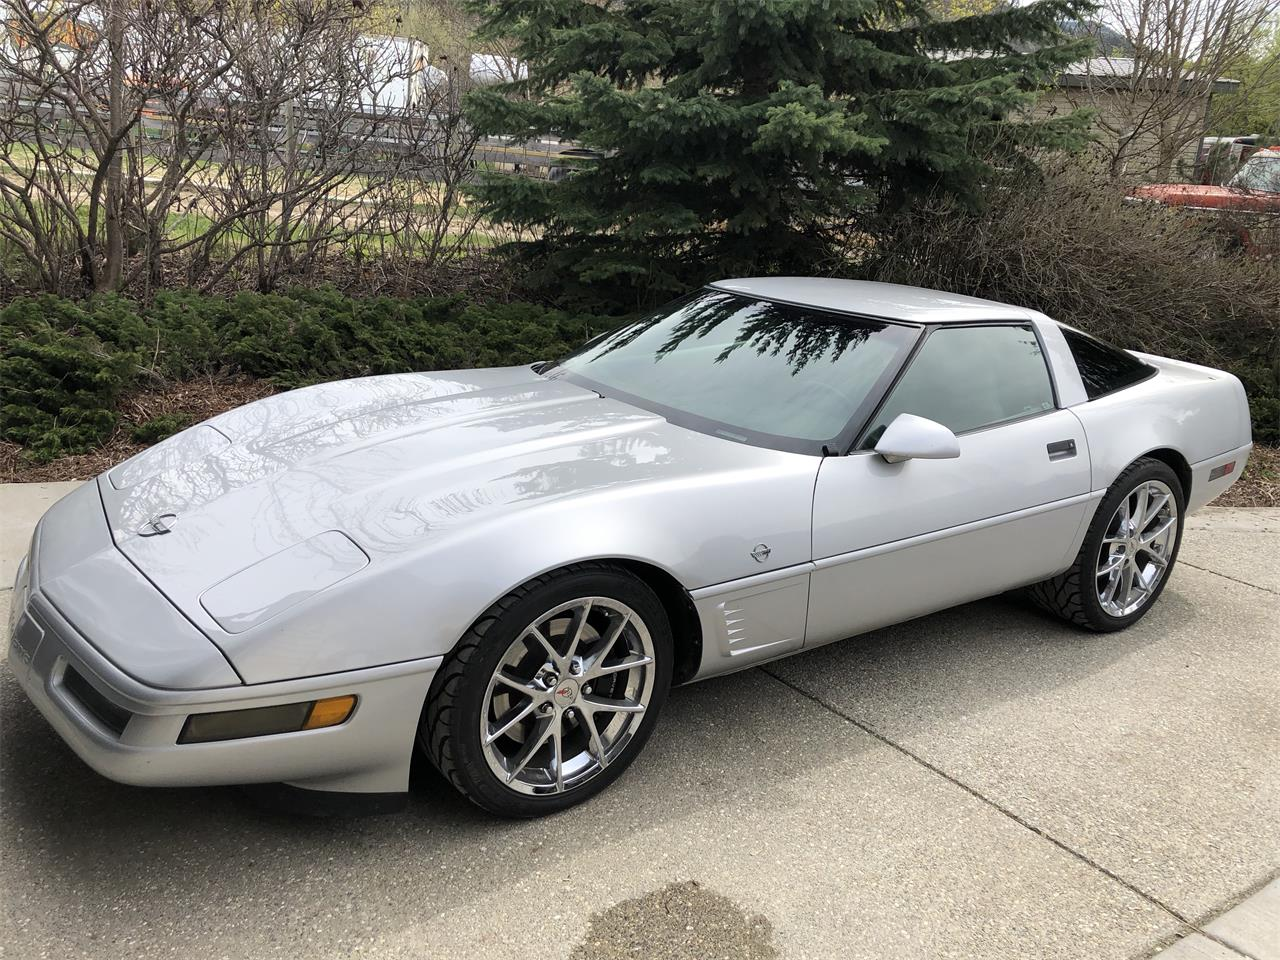 Large Picture of '96 Chevrolet Corvette - $19,750.00 - QDY2